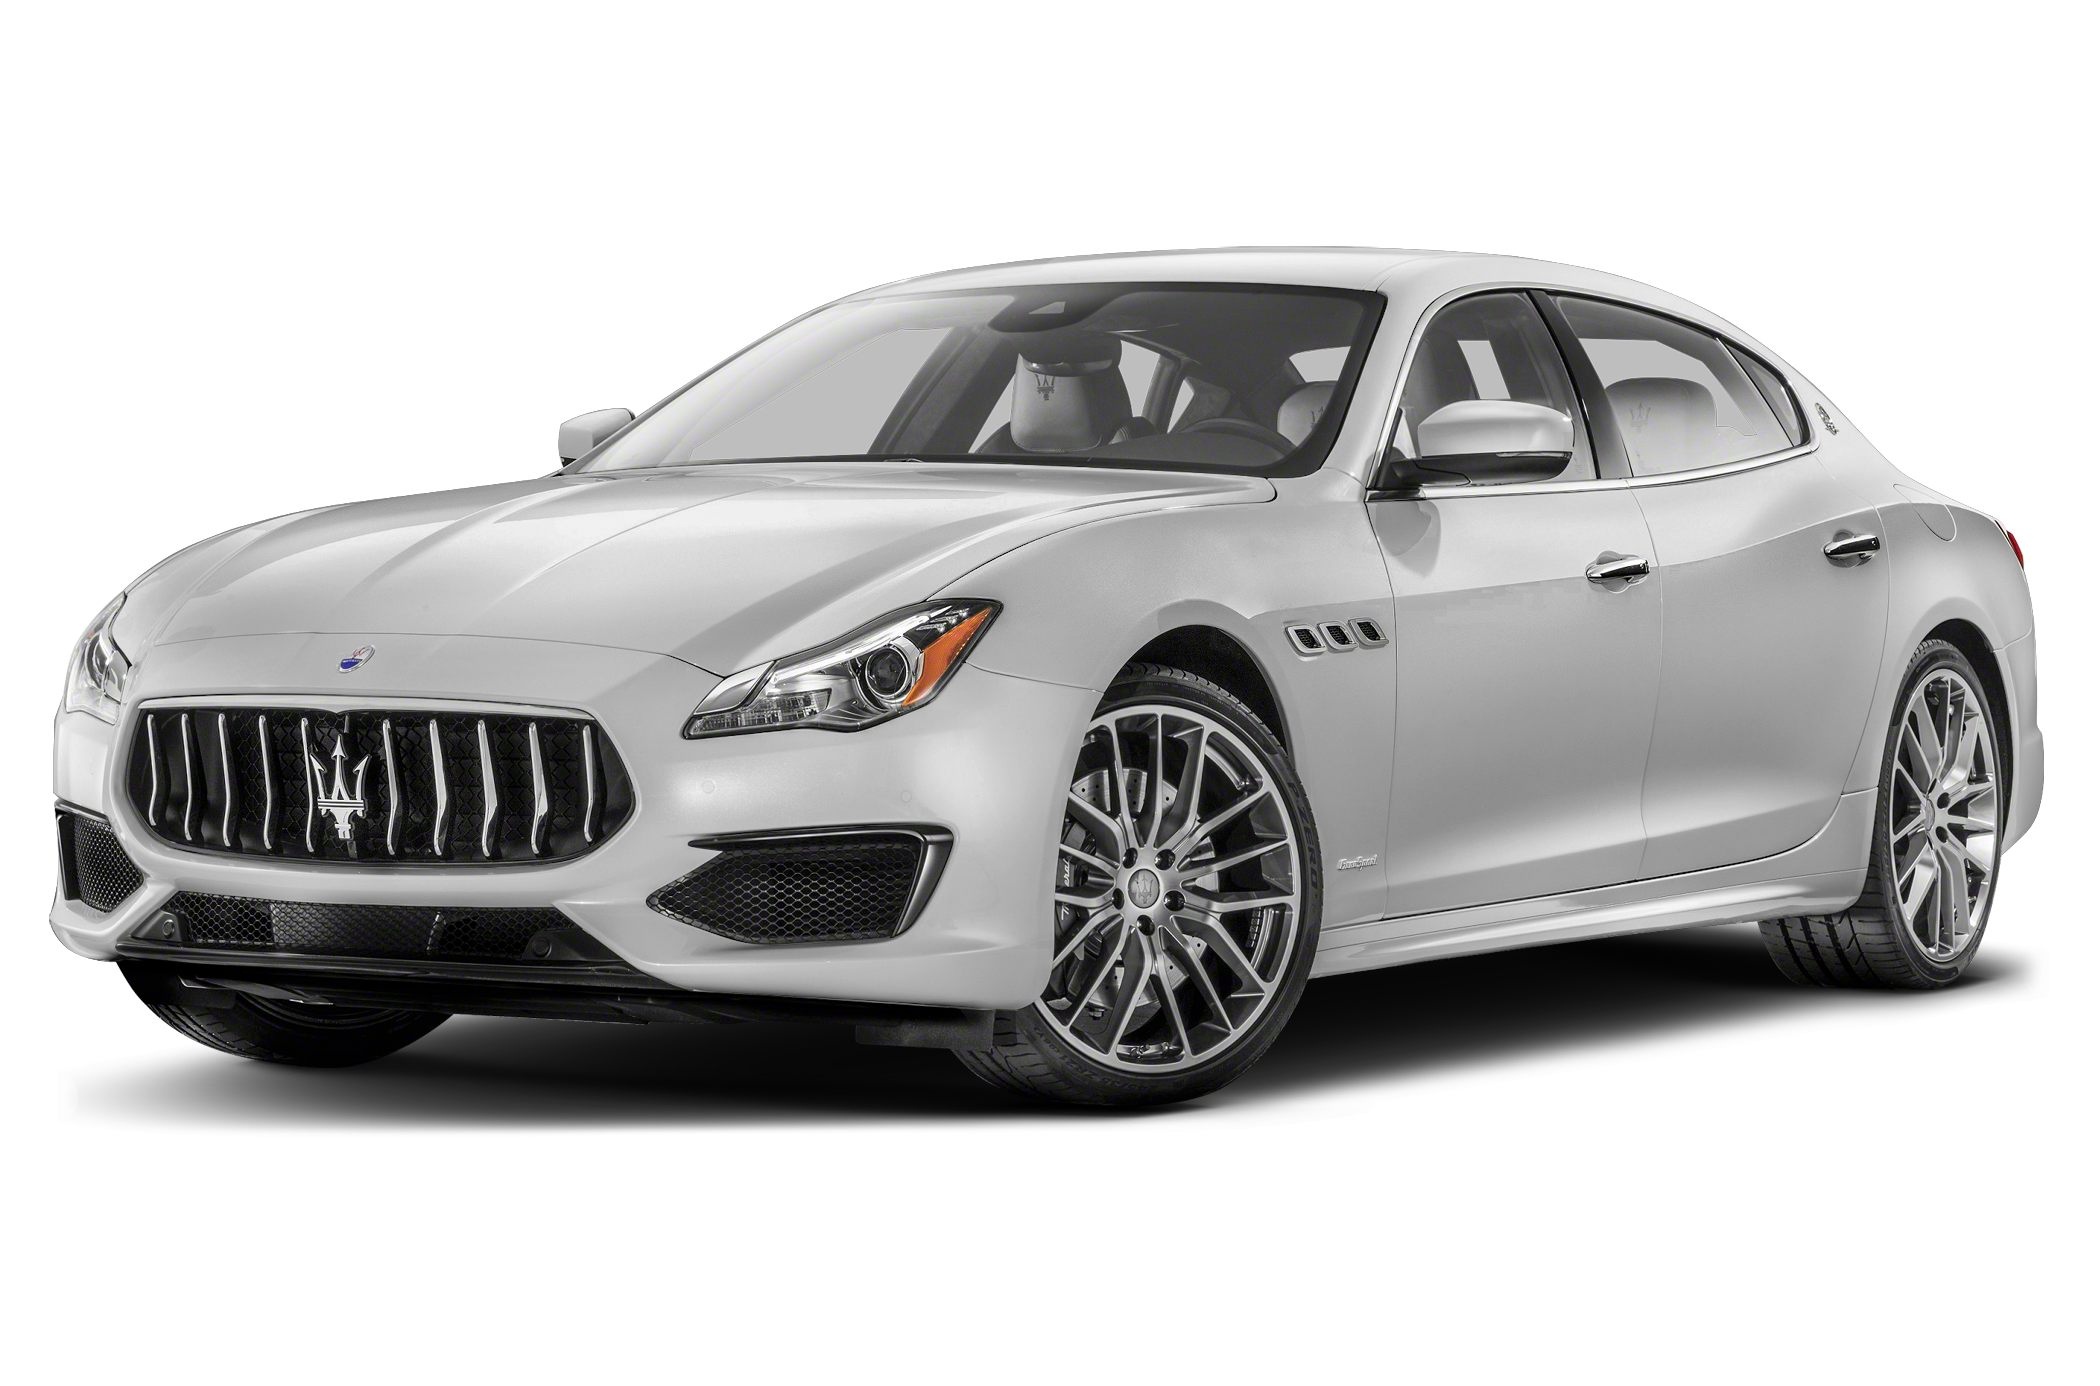 2017 maserati quattroporte first drive autoblog. Black Bedroom Furniture Sets. Home Design Ideas